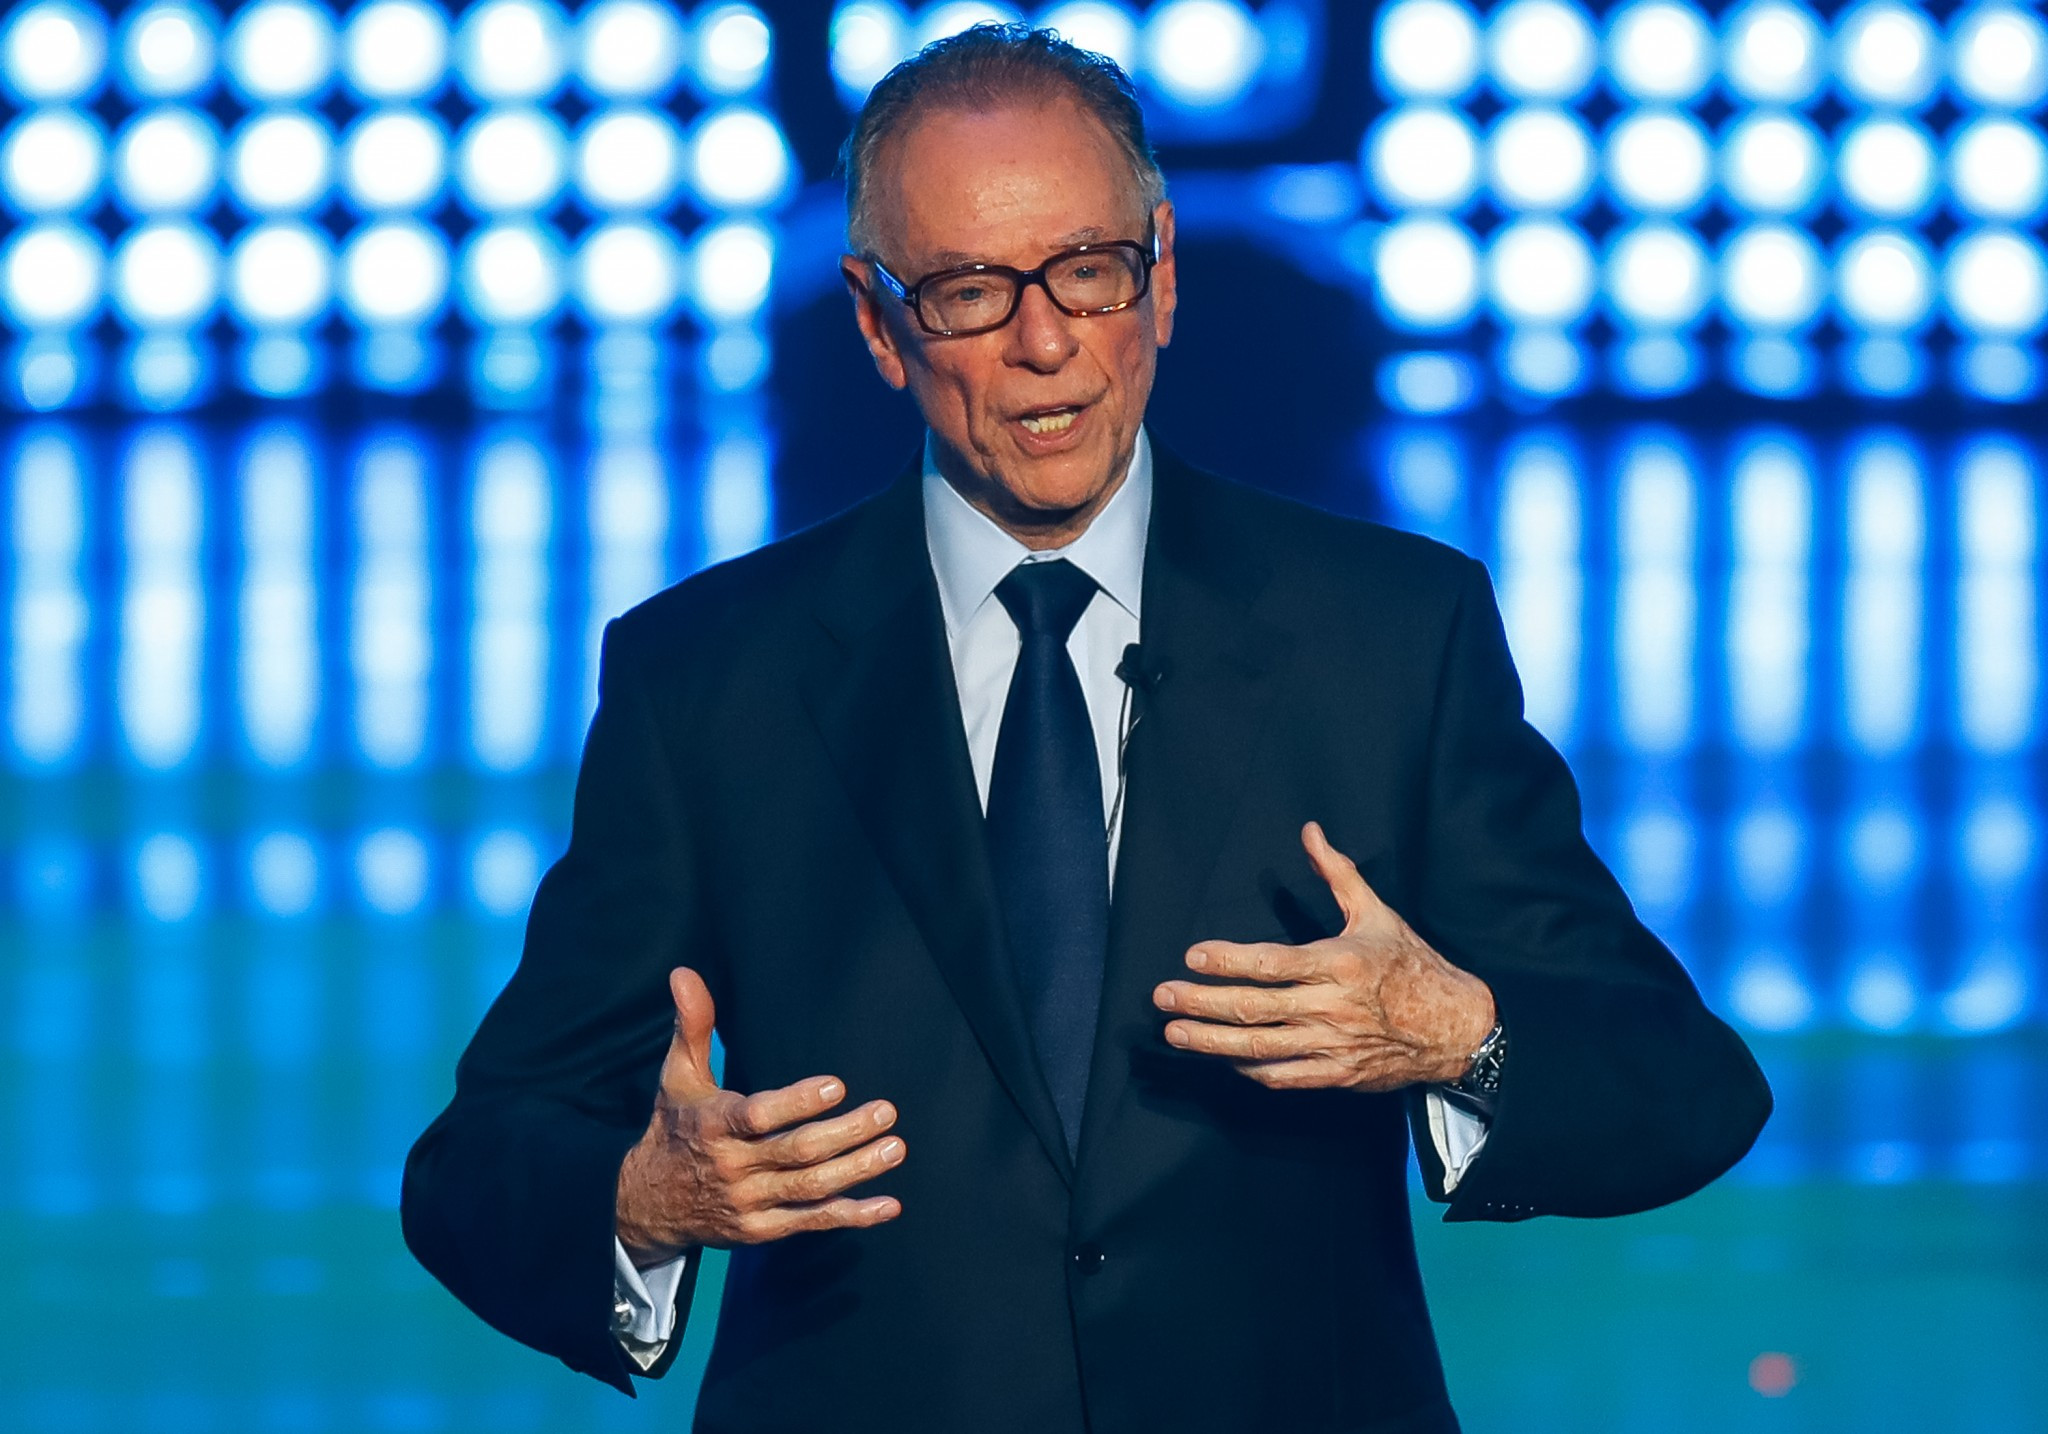 Carlos Nuzman is still President of COB and Rio 2016 ©Getty Images